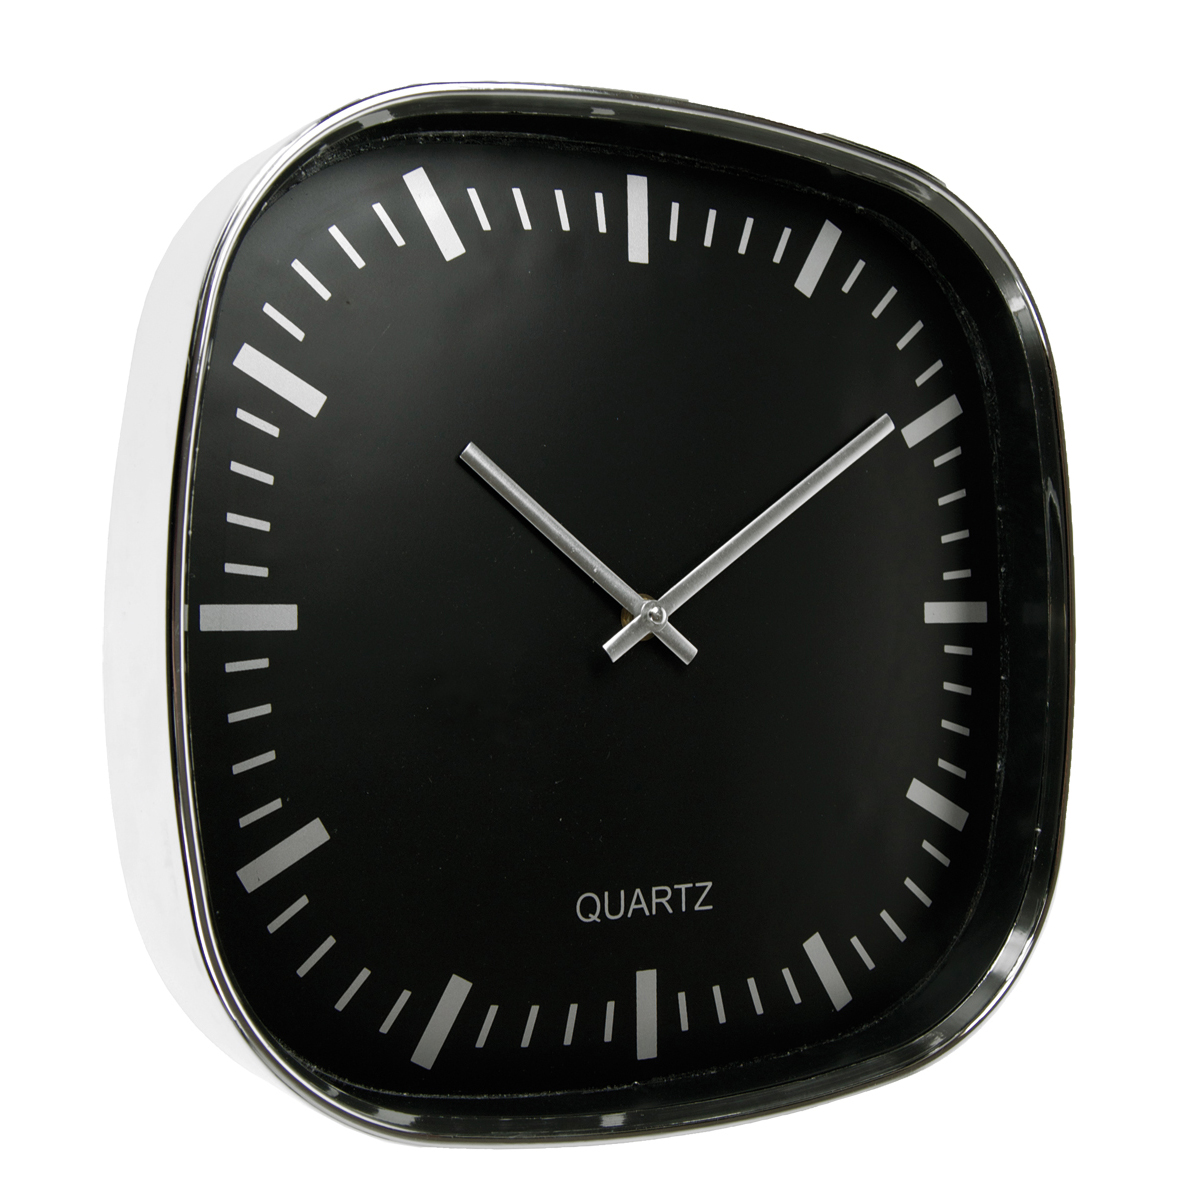 Plastic Wall Clock 30 - hmi36030-01 (Black)